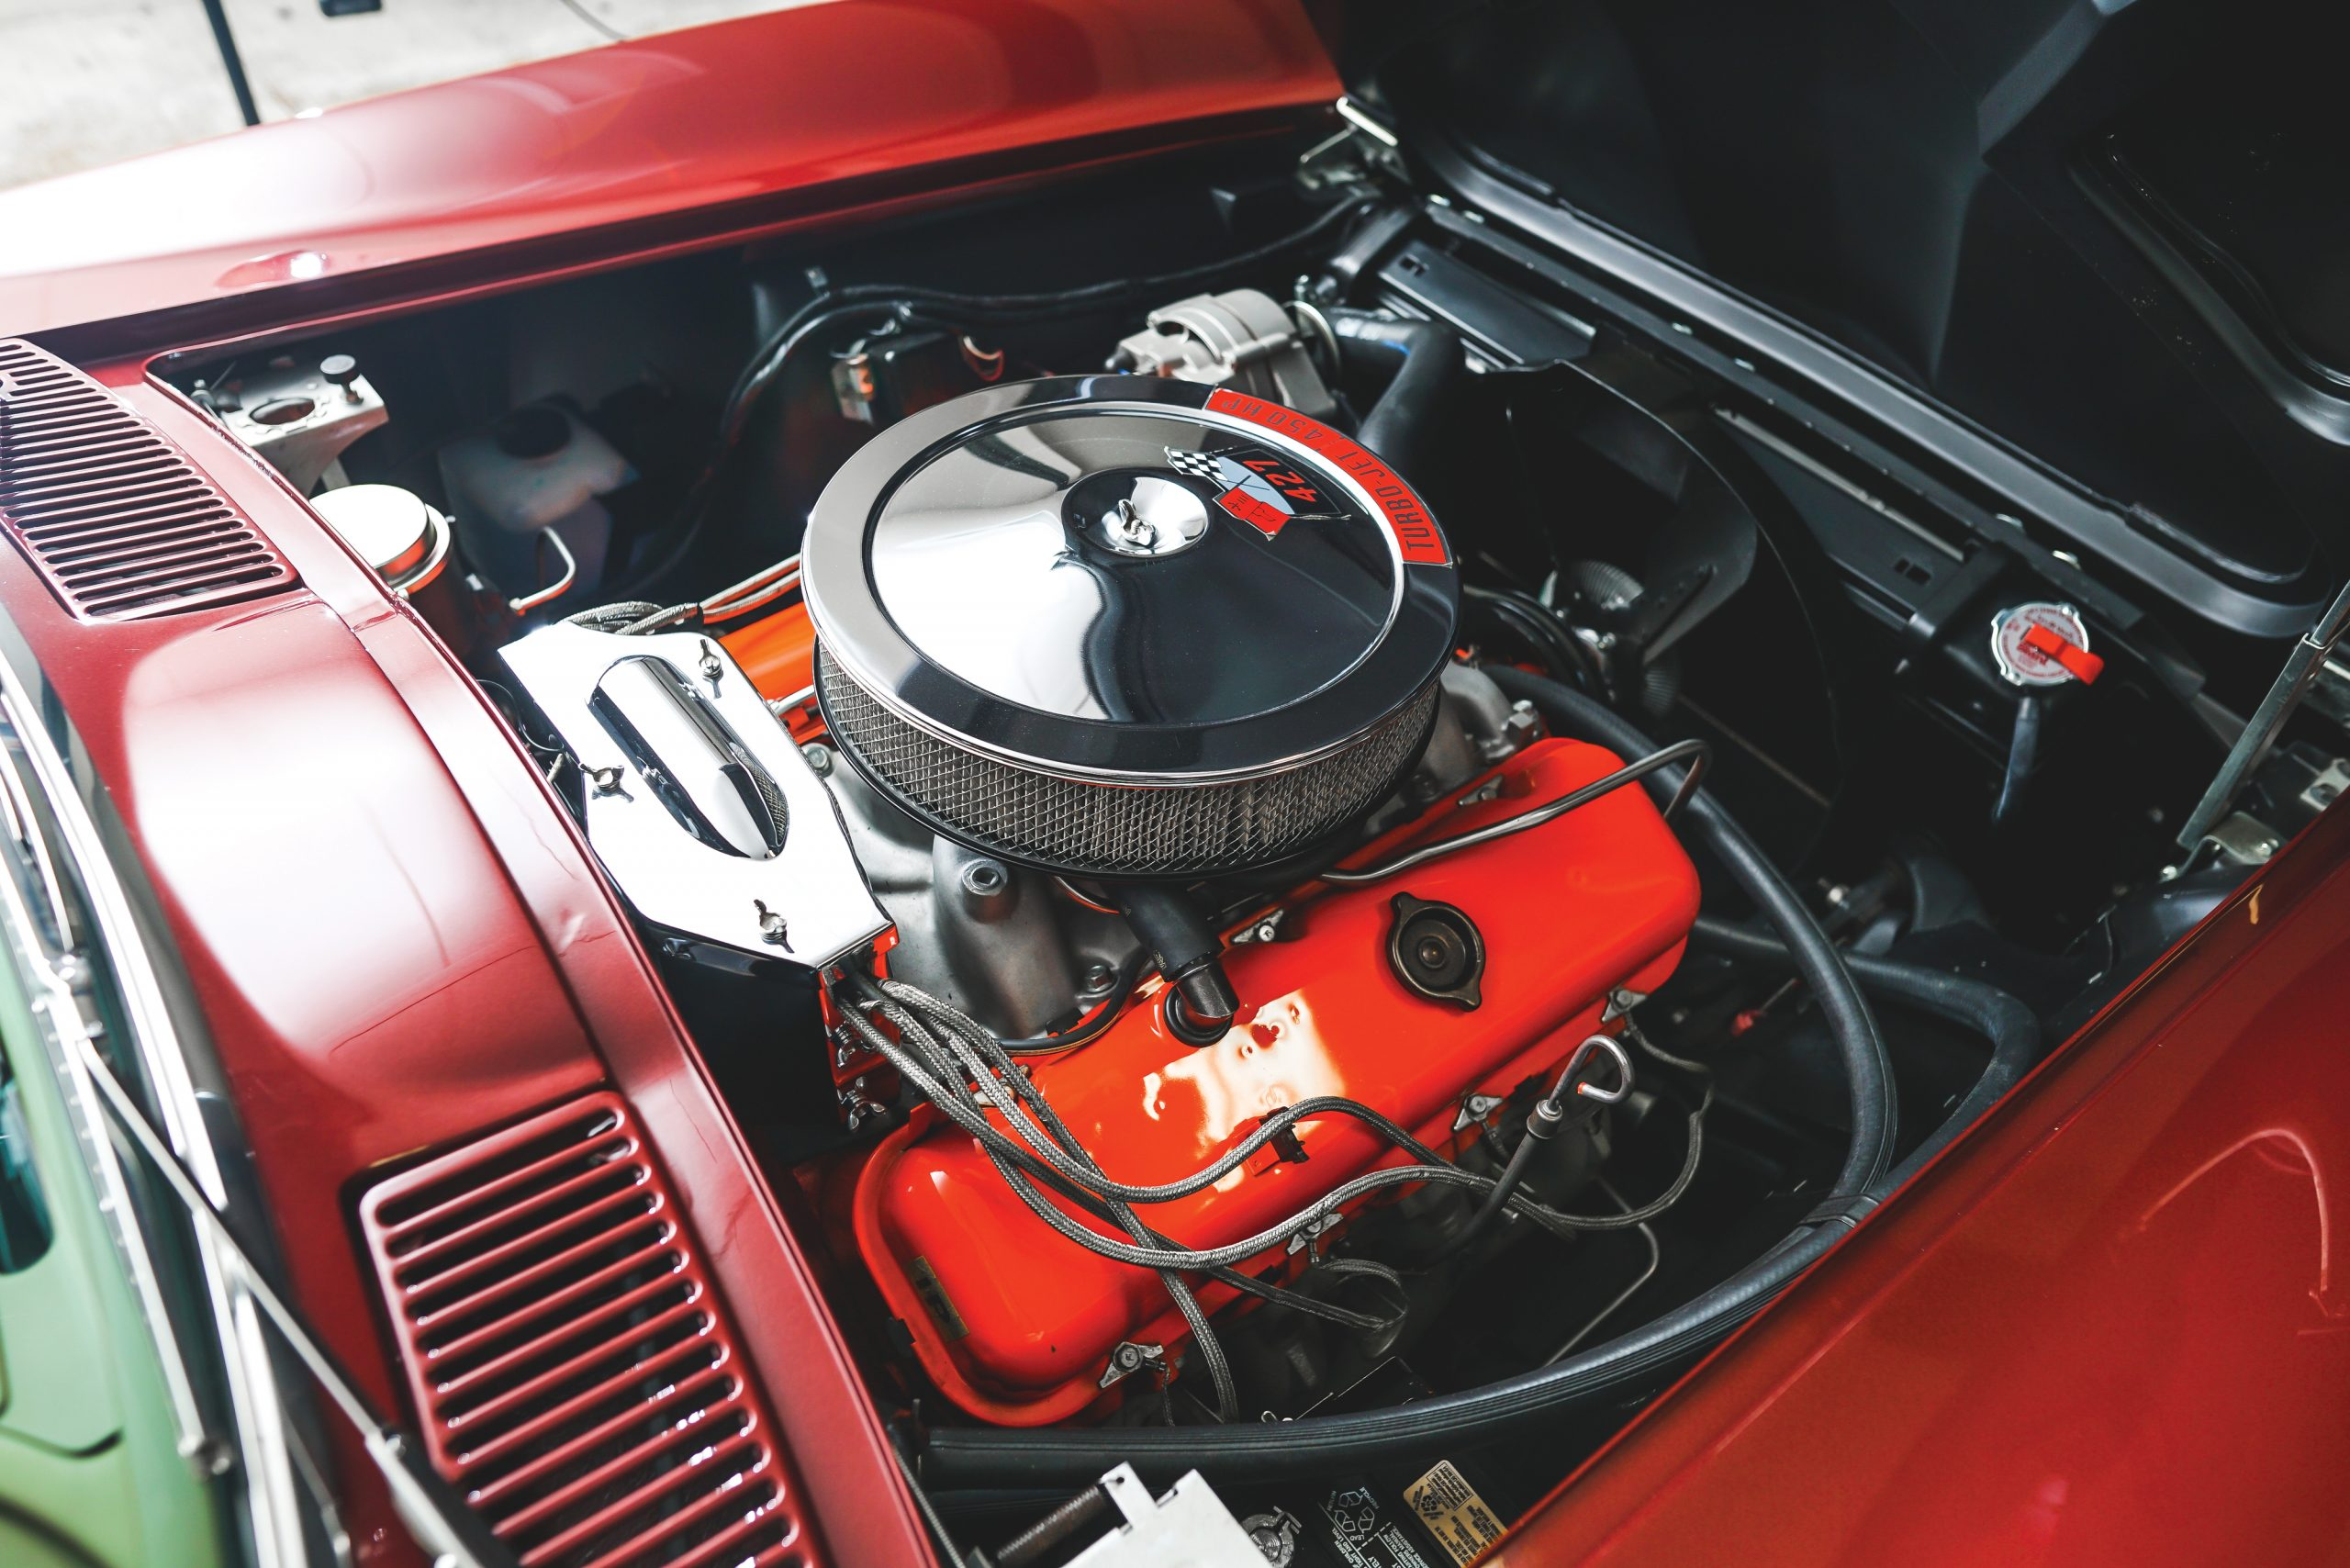 1966 Chevrolet Corvette Sting Ray 427 450 Convertible Engine